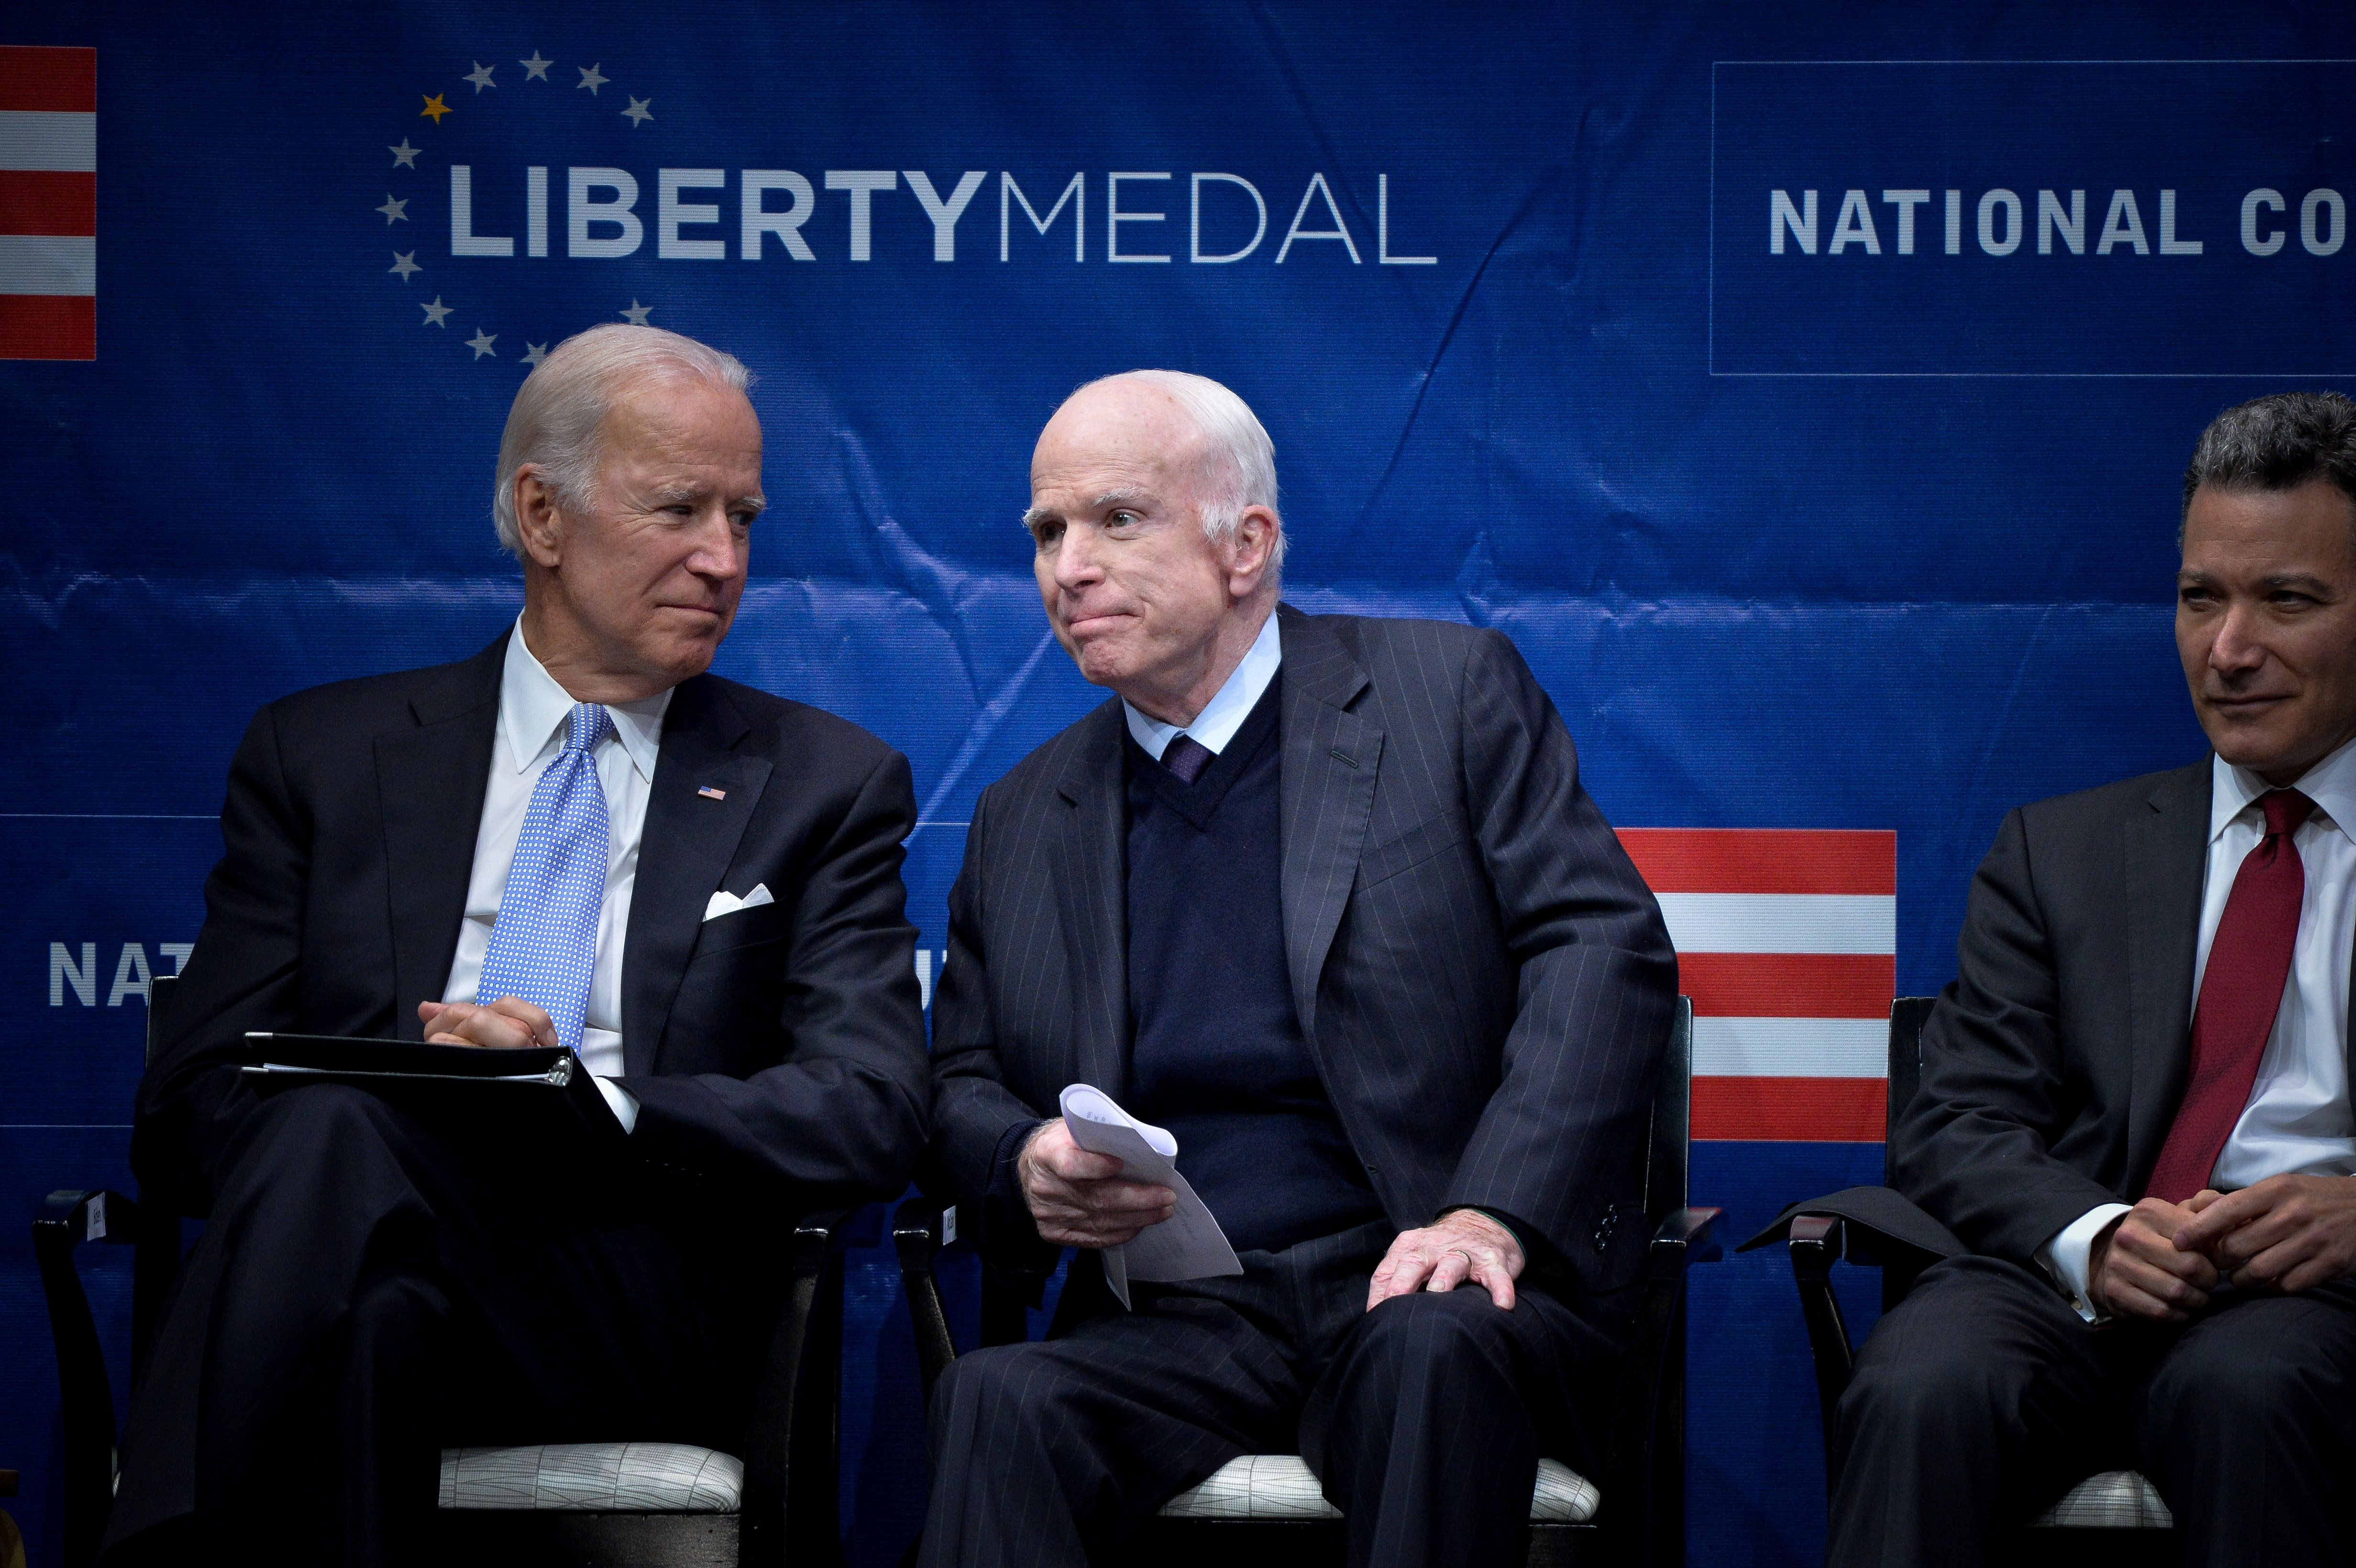 U.S. Senator John McCain (R-AZ) waits to speak before being awarded the 2017 Liberty Medal by former U.S. Vice President Joe Biden at the Independence Hall in Philadelphia, Pennsylvania, U.S., October 16, 2017. At right is President of the National Constitution Center Jeffrey Rosen. REUTERS/Charles Mostoller